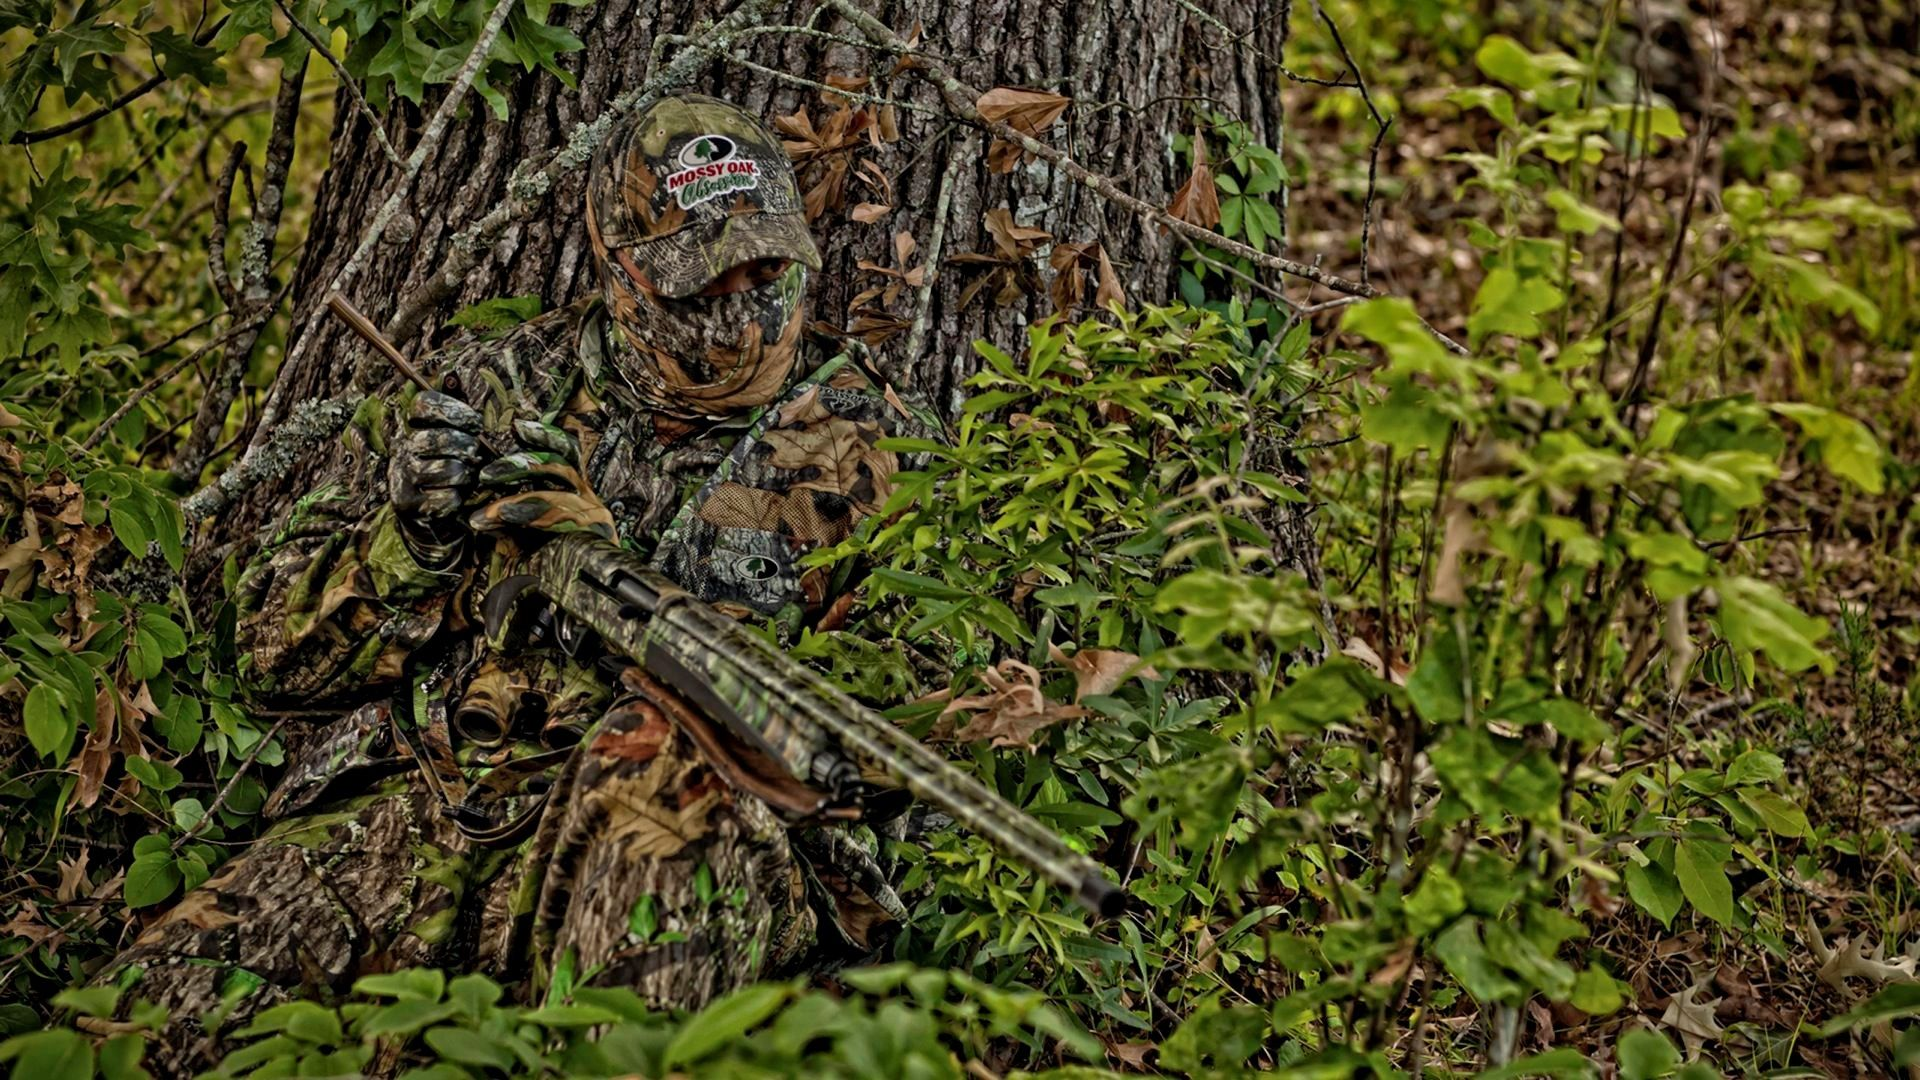 realtree camo mossy oak obsession wallpaper | sharovarka ...